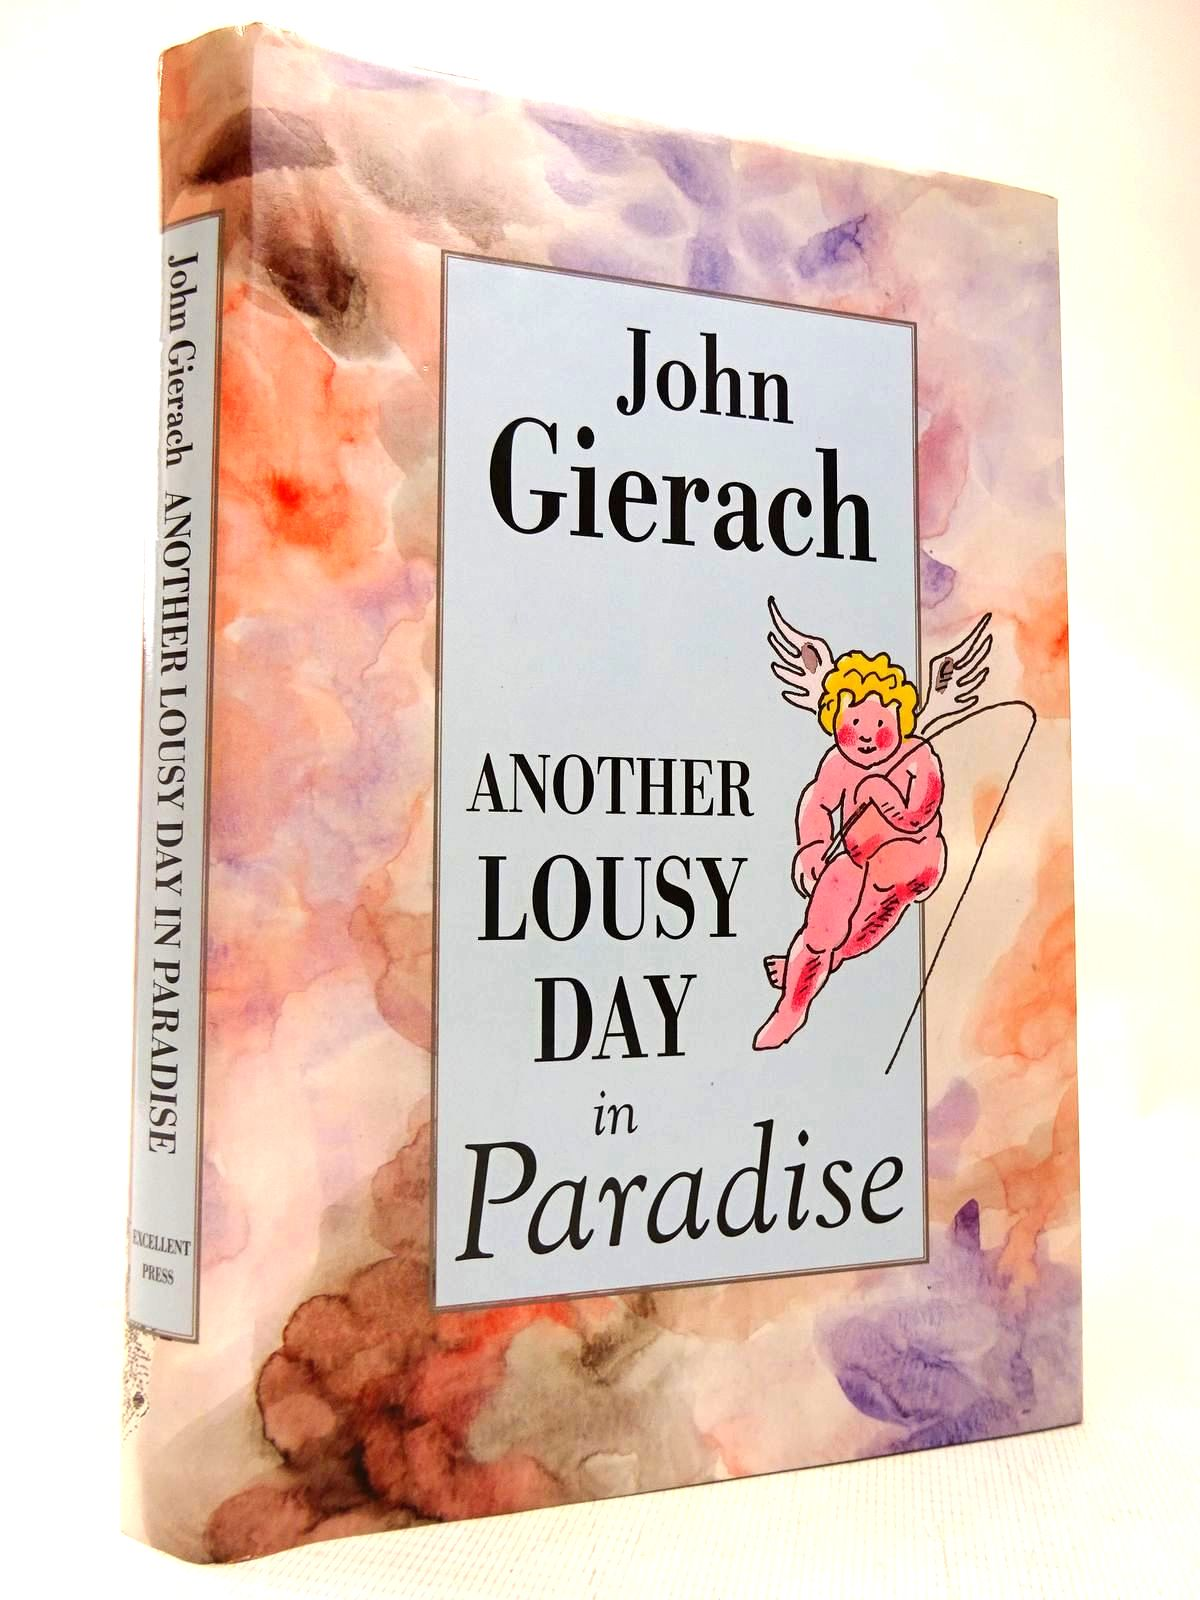 Photo of ANOTHER LOUSY DAY IN PARADISE written by Gierach, John illustrated by Wolff, Glenn published by Excellent Press (STOCK CODE: 1816599)  for sale by Stella & Rose's Books